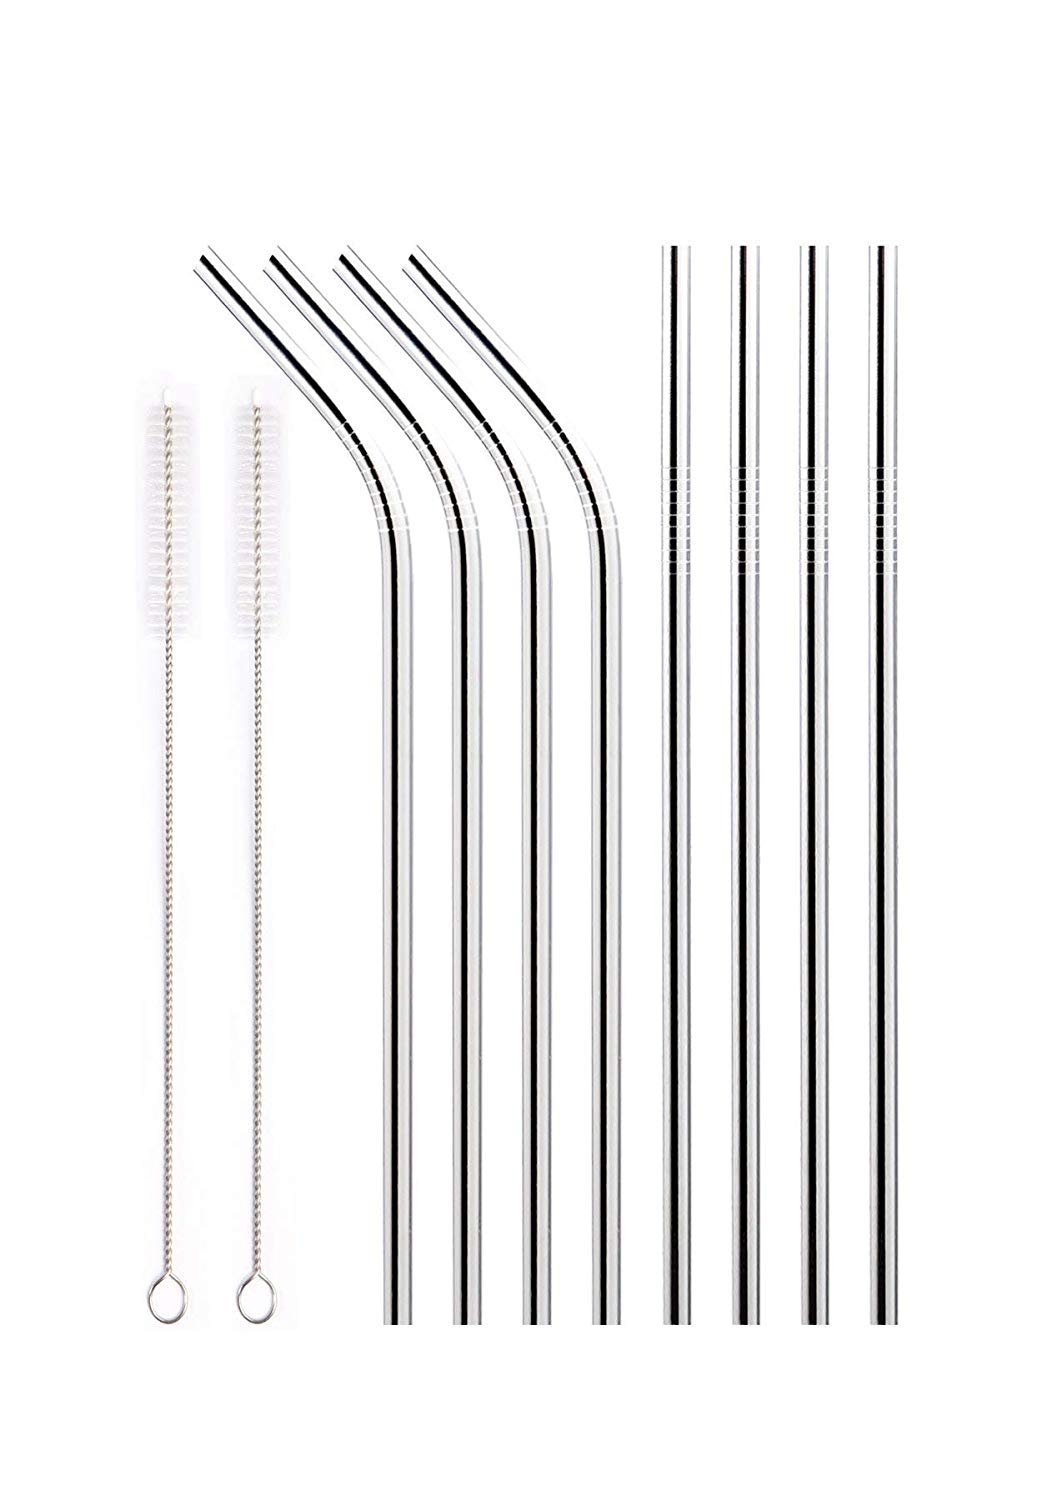 Red Smoothie Straws 9.45'' (6.5mm) - Pack of 300 Individually Wrapped Plastic Straws, Drinking Straws for Slushies, Wrapped Milkshake Straws (300ct)